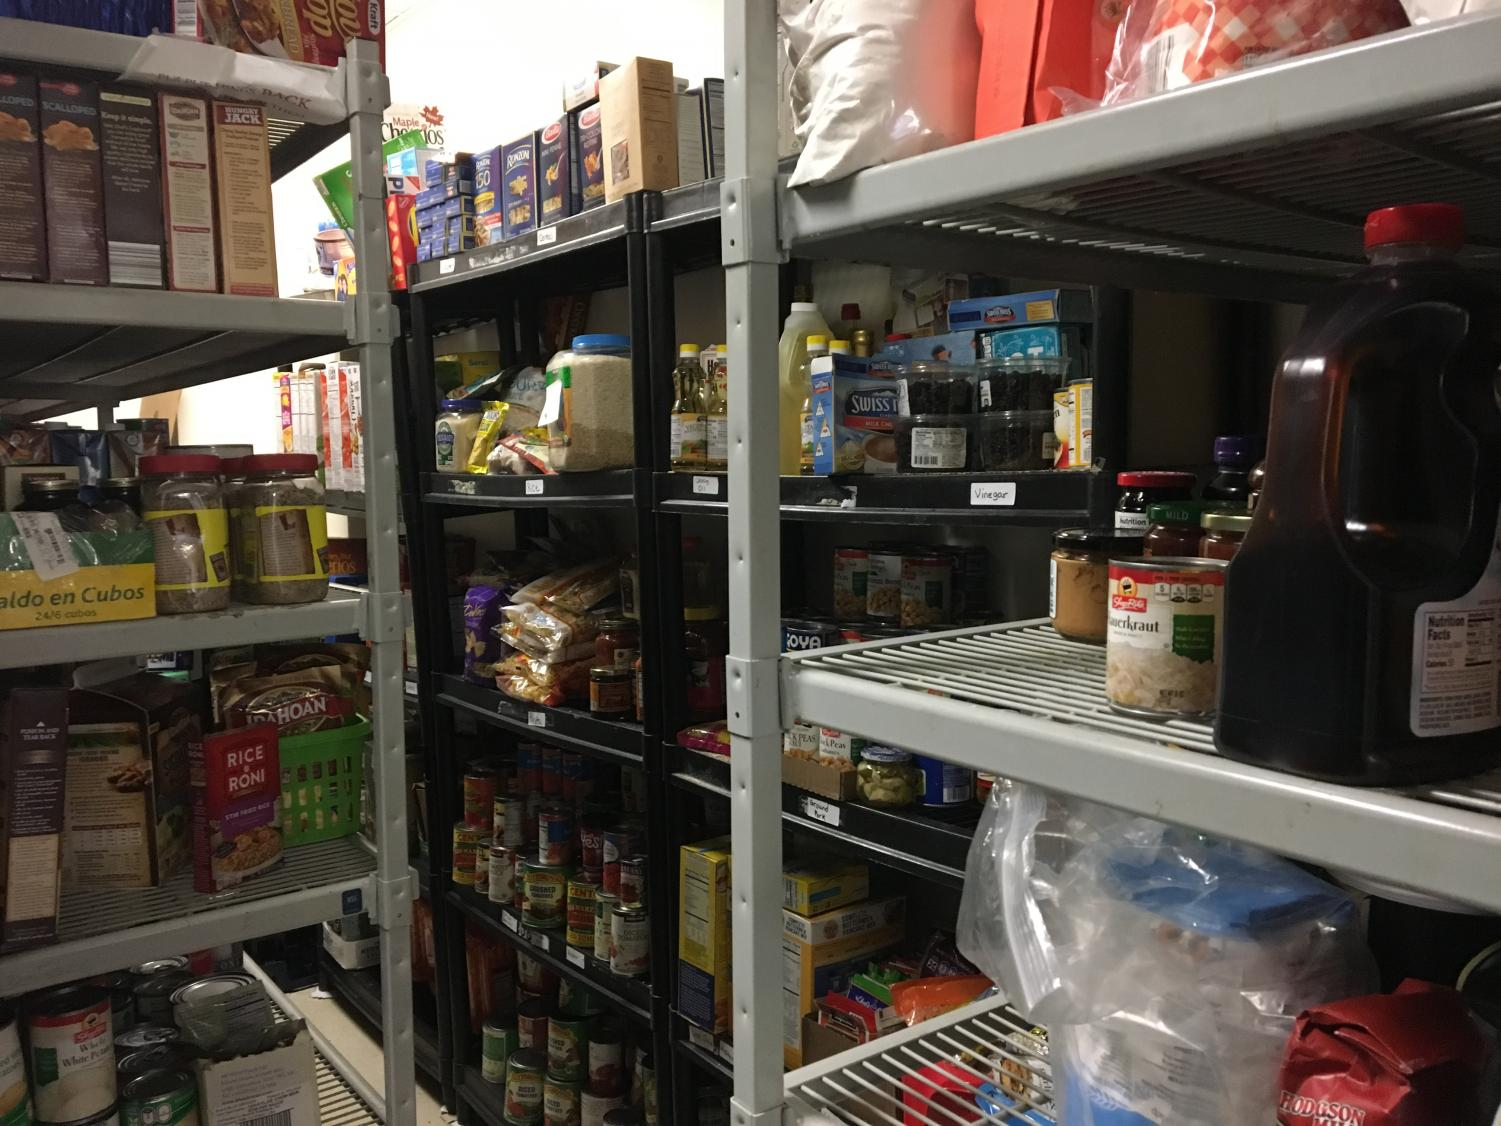 The Bethel Center helps many families in need during the holidays as well as all year round. Photo courtesy of Bethelmilford.edu.